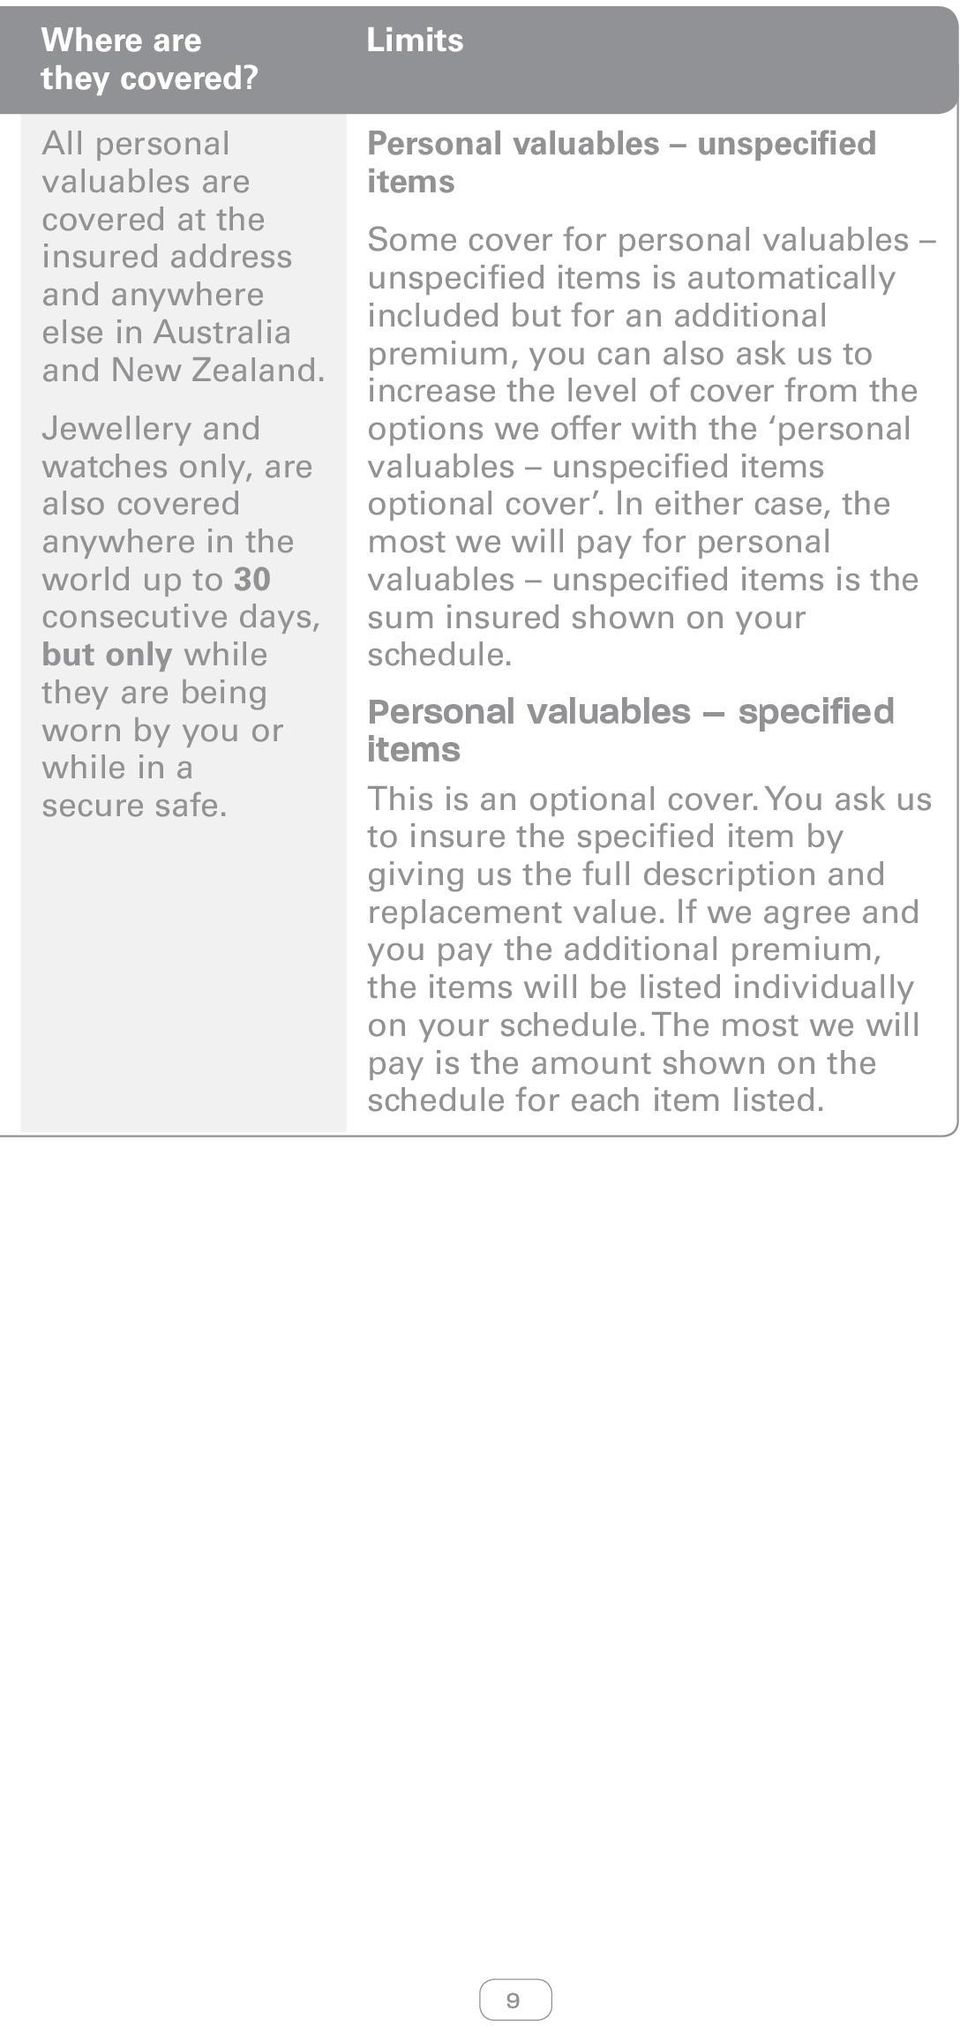 Limits Personal valuables unspecified items Some cover for personal valuables unspecified items is automatically included but for an additional premium, you can also ask us to increase the level of